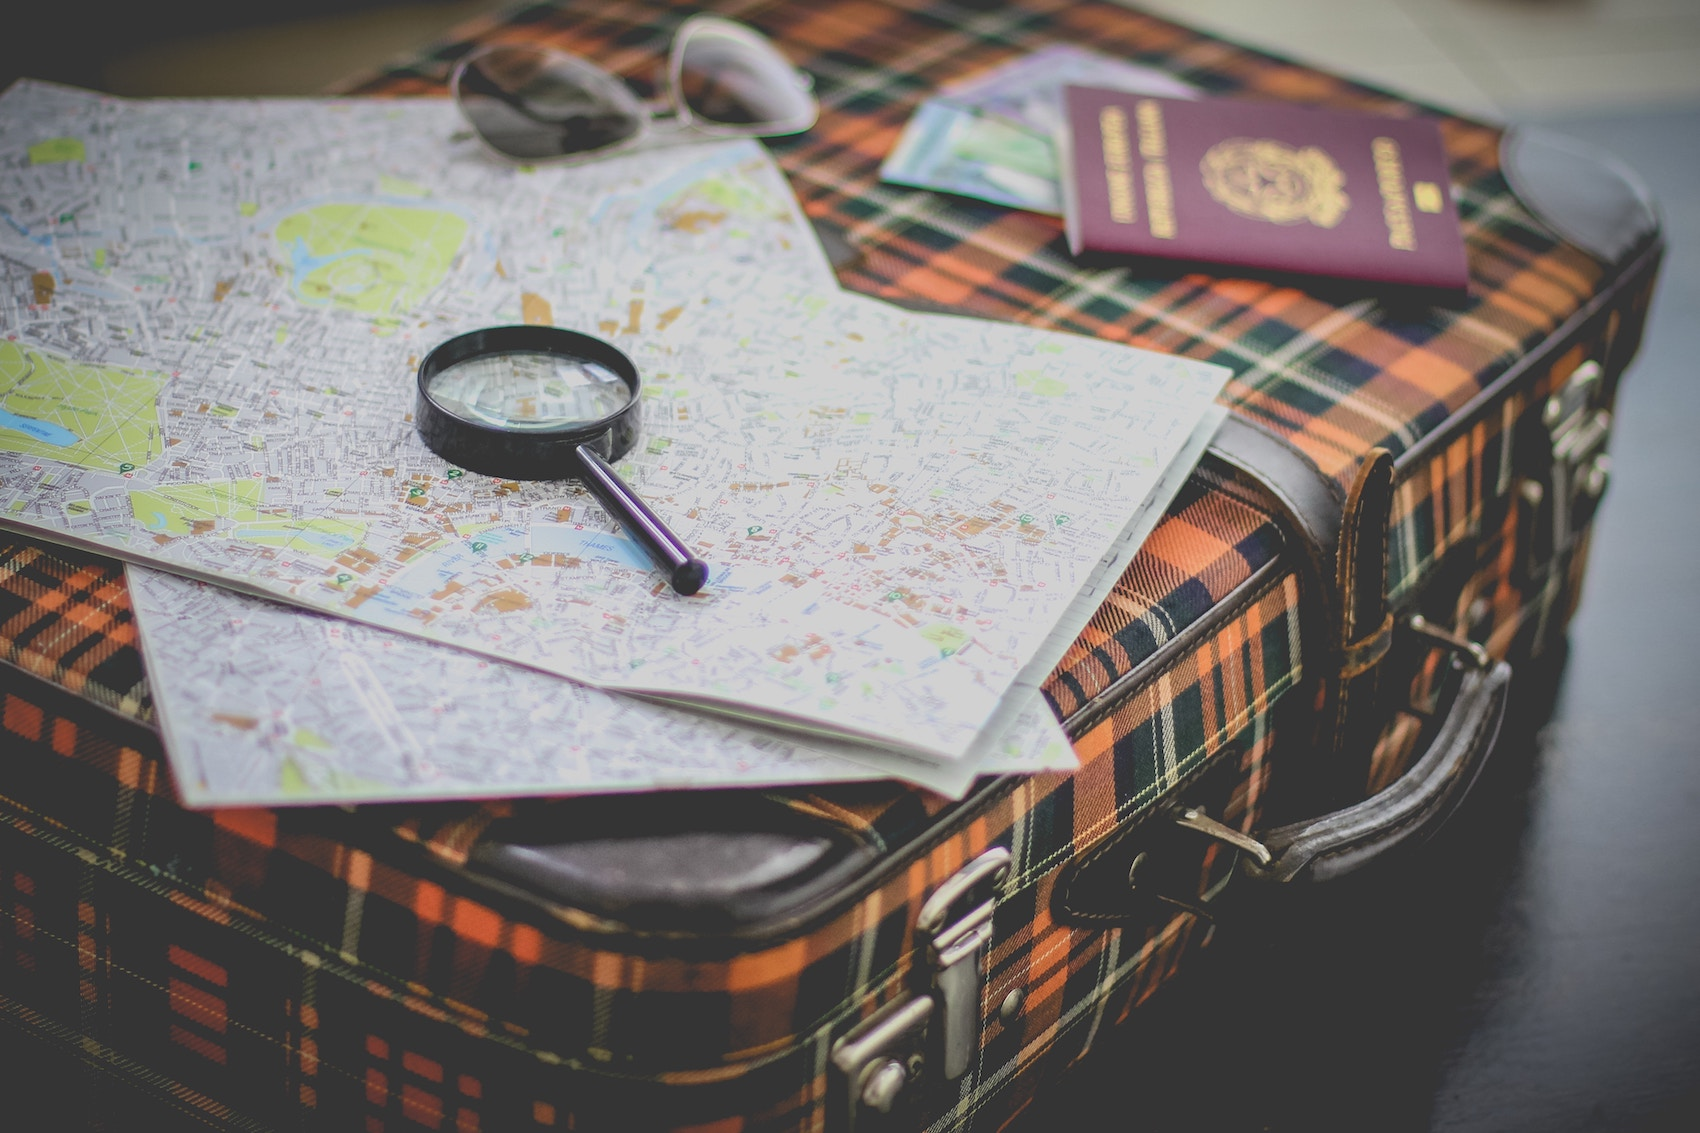 https://outoftownblog.com/wp-content/uploads/2018/10/Japanese-Passport-Lands-on-the-Top-Spot-While-Germany-Falls-One-Spot-from-Second-Place-photo-by-Francesca-Tirico-via-Unsplash.jpg